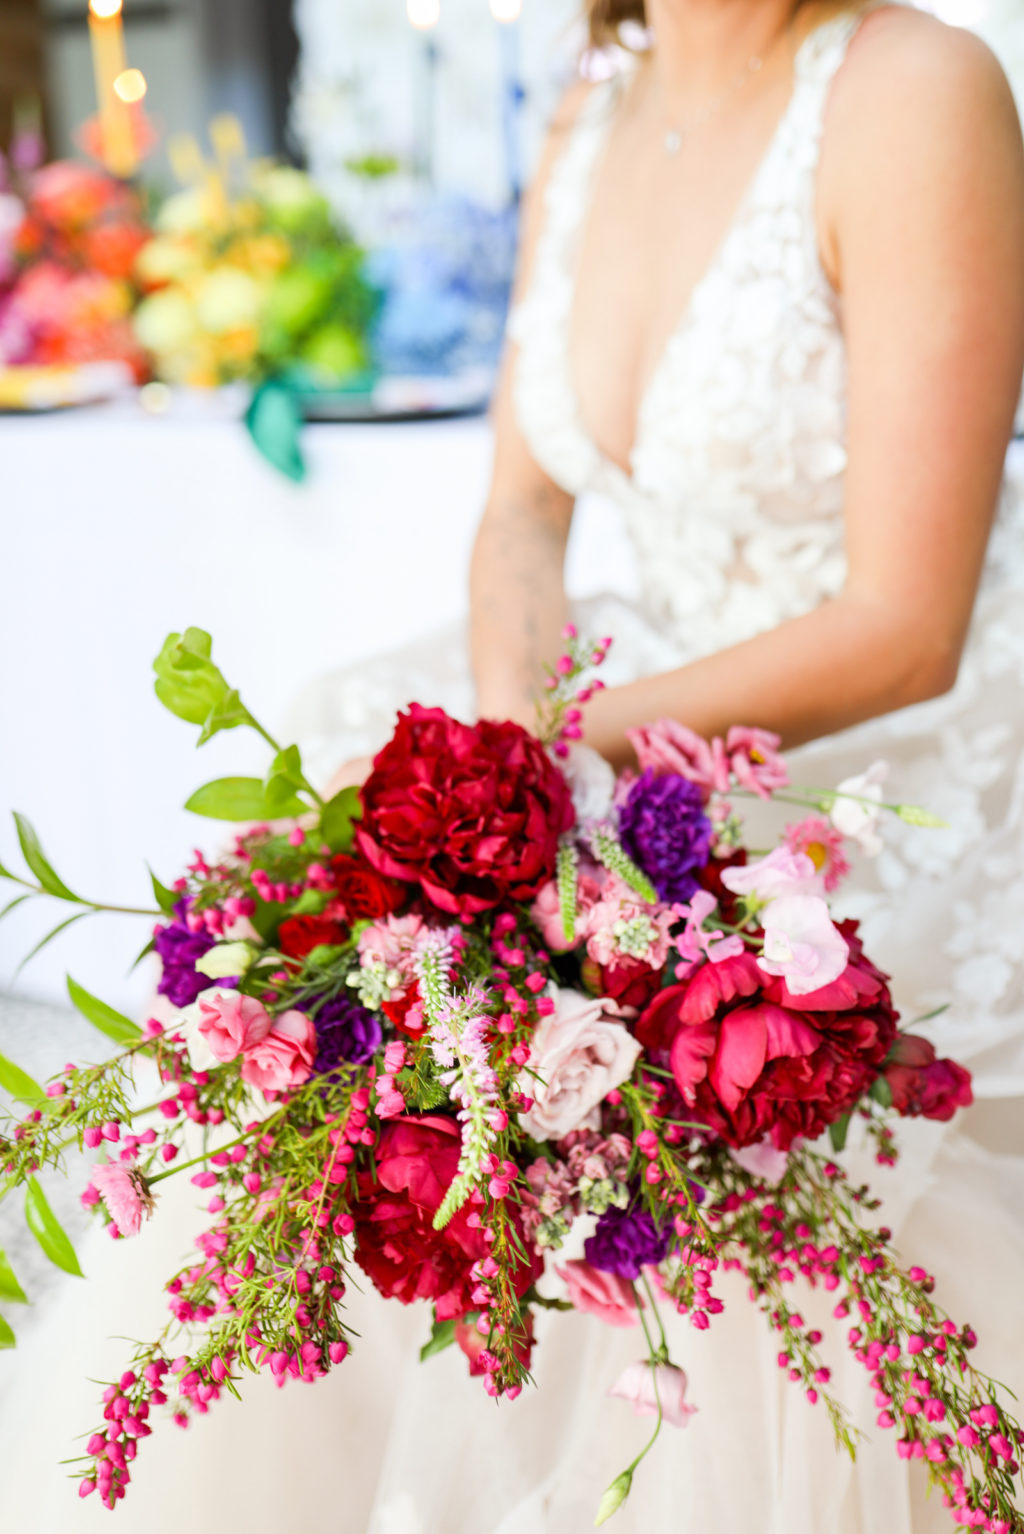 Colorful Modern Rainbow Gay LGBTQ+ Pride Wedding Reception Decor, Lesbian Bride Holding Wild Red, Purple and Pink Floral Bouquet   Tampa Bay Wedding Planner Stephany Perry Events